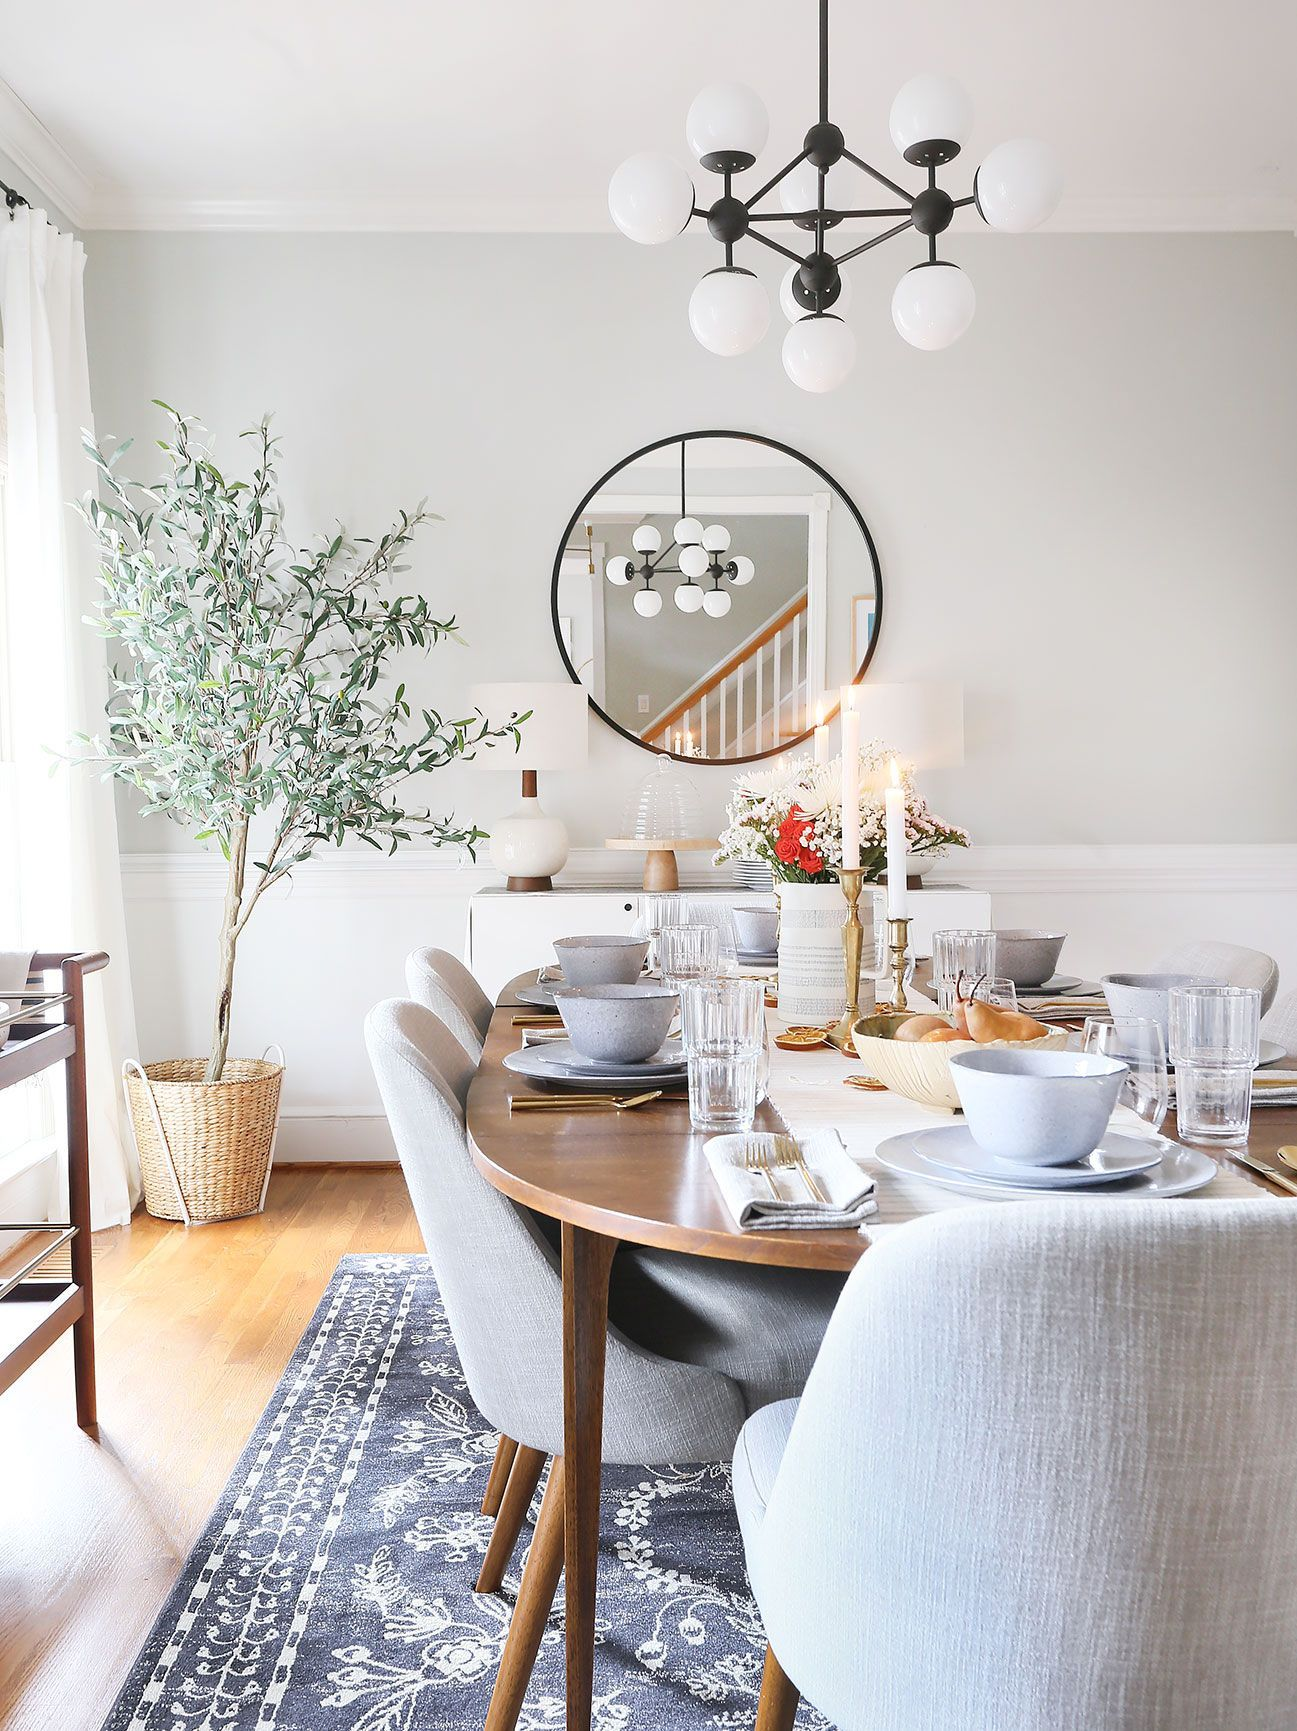 Modern Minimalist Christmas Dining Room Explore These Simple Christmas Decorations With Natura Minimalist Dining Room Christmas Dining Room Modern Dining Room